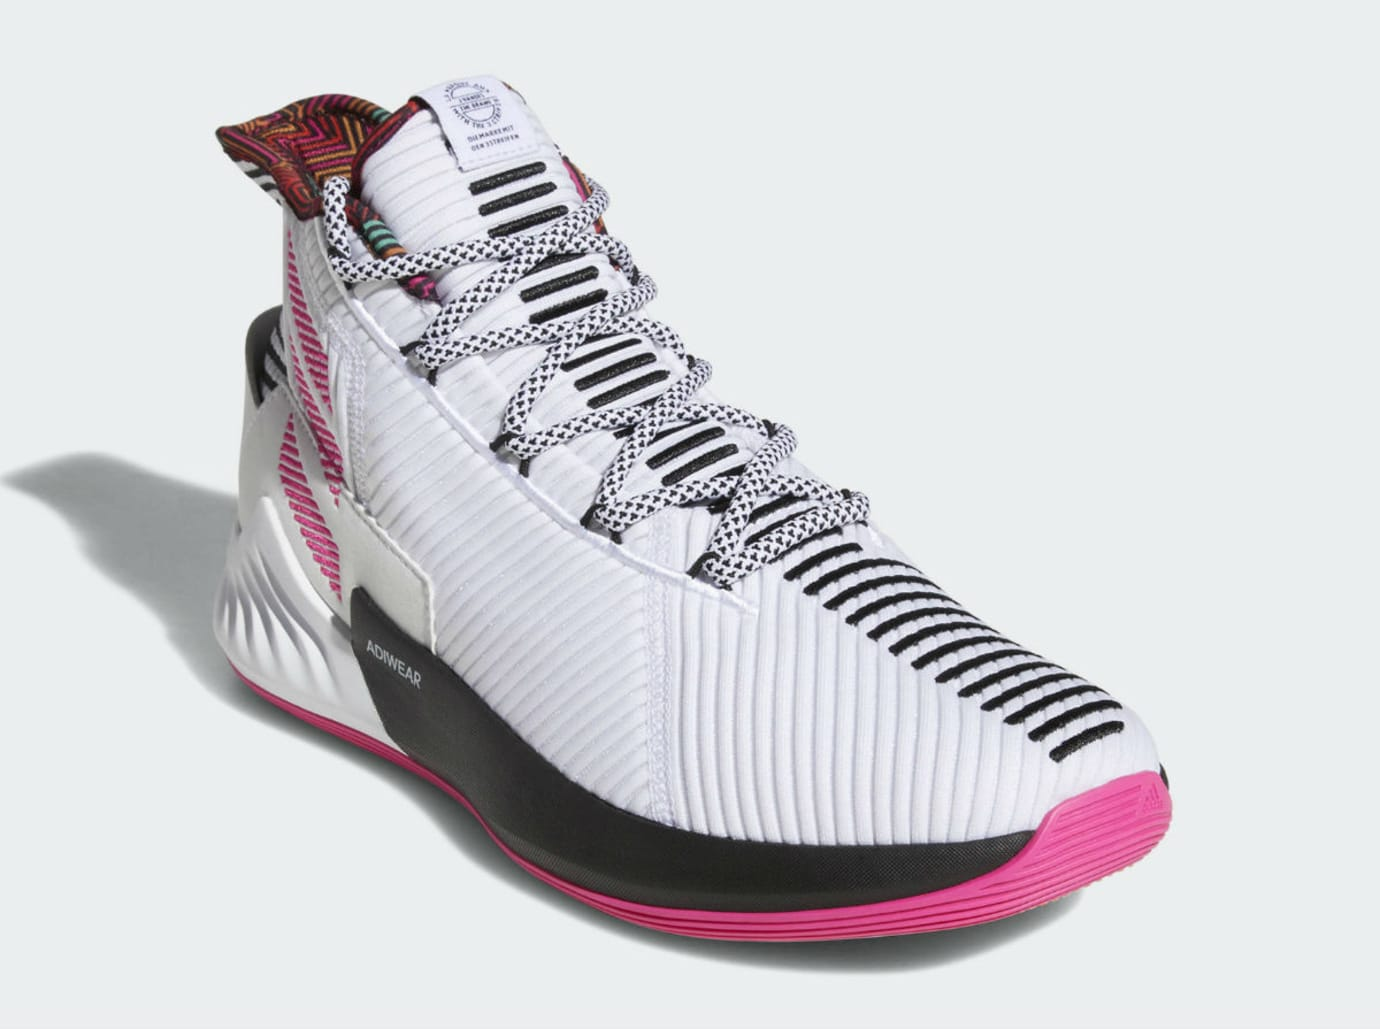 0bc2a6b93b7 Image via Adidas Adidas D Rose 9 White Black Pink Release Date BB7658 Front